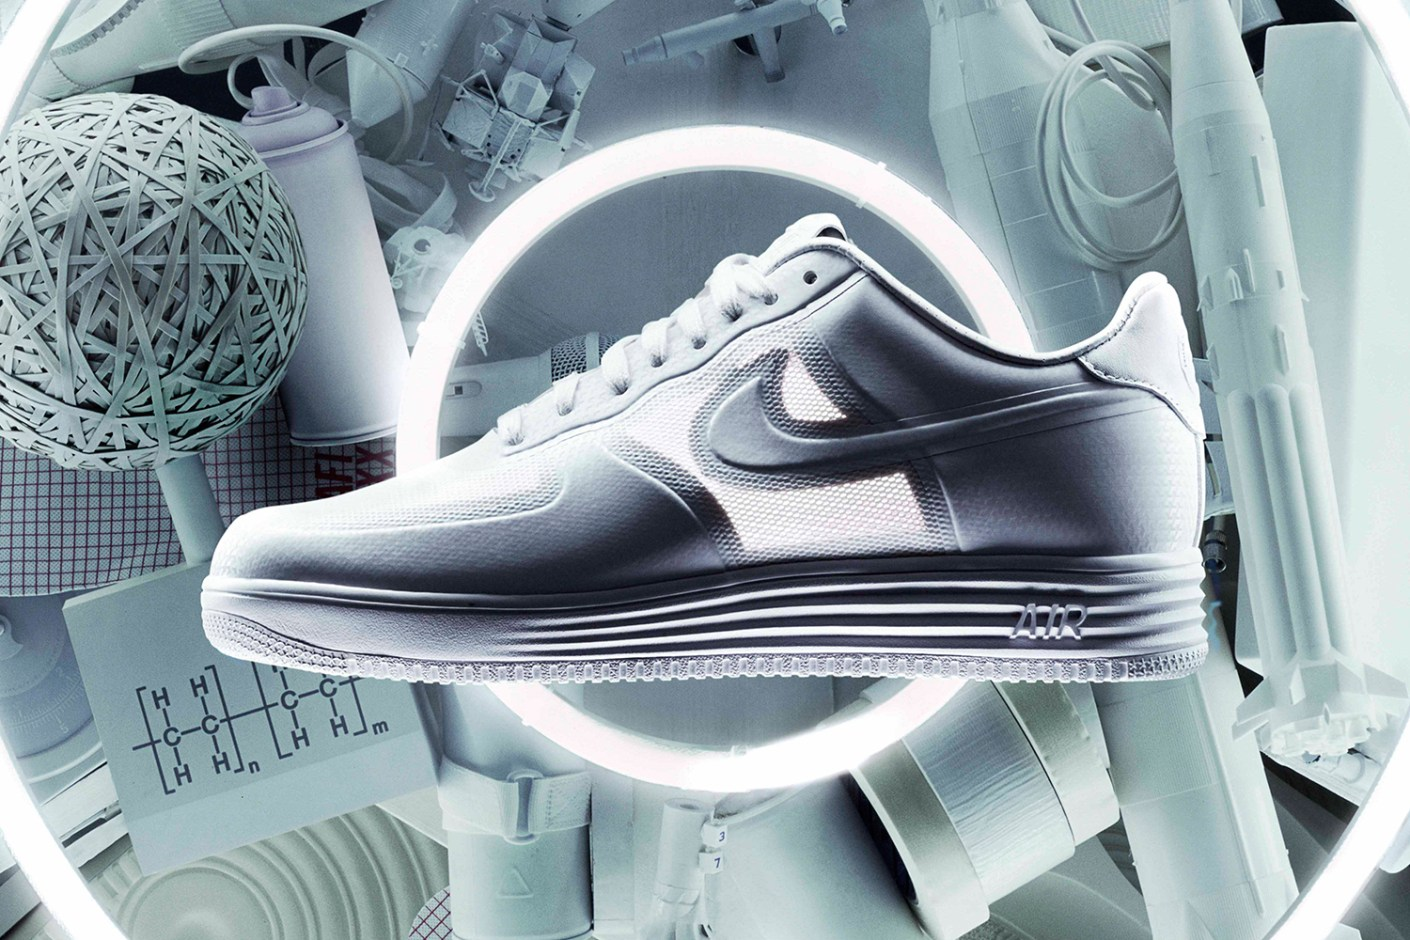 Image of The Nike Lunar Force 1 Continues with Nike's Air Force 1 30th Anniversary